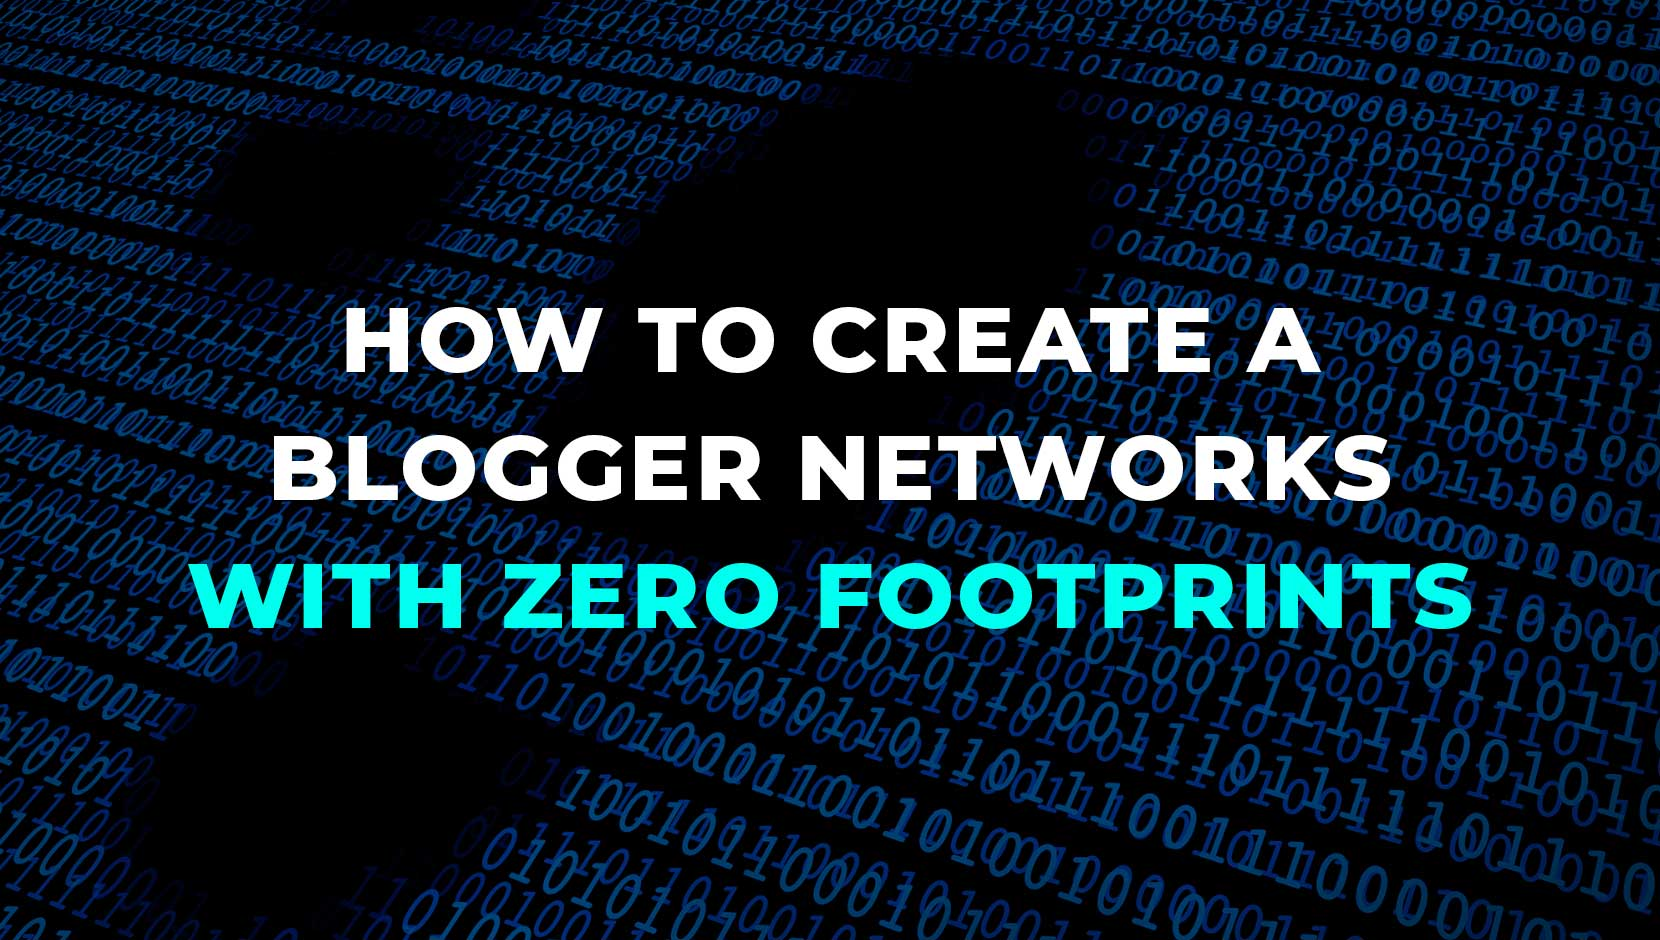 How to Create Blogger Networks with Zero Footprint